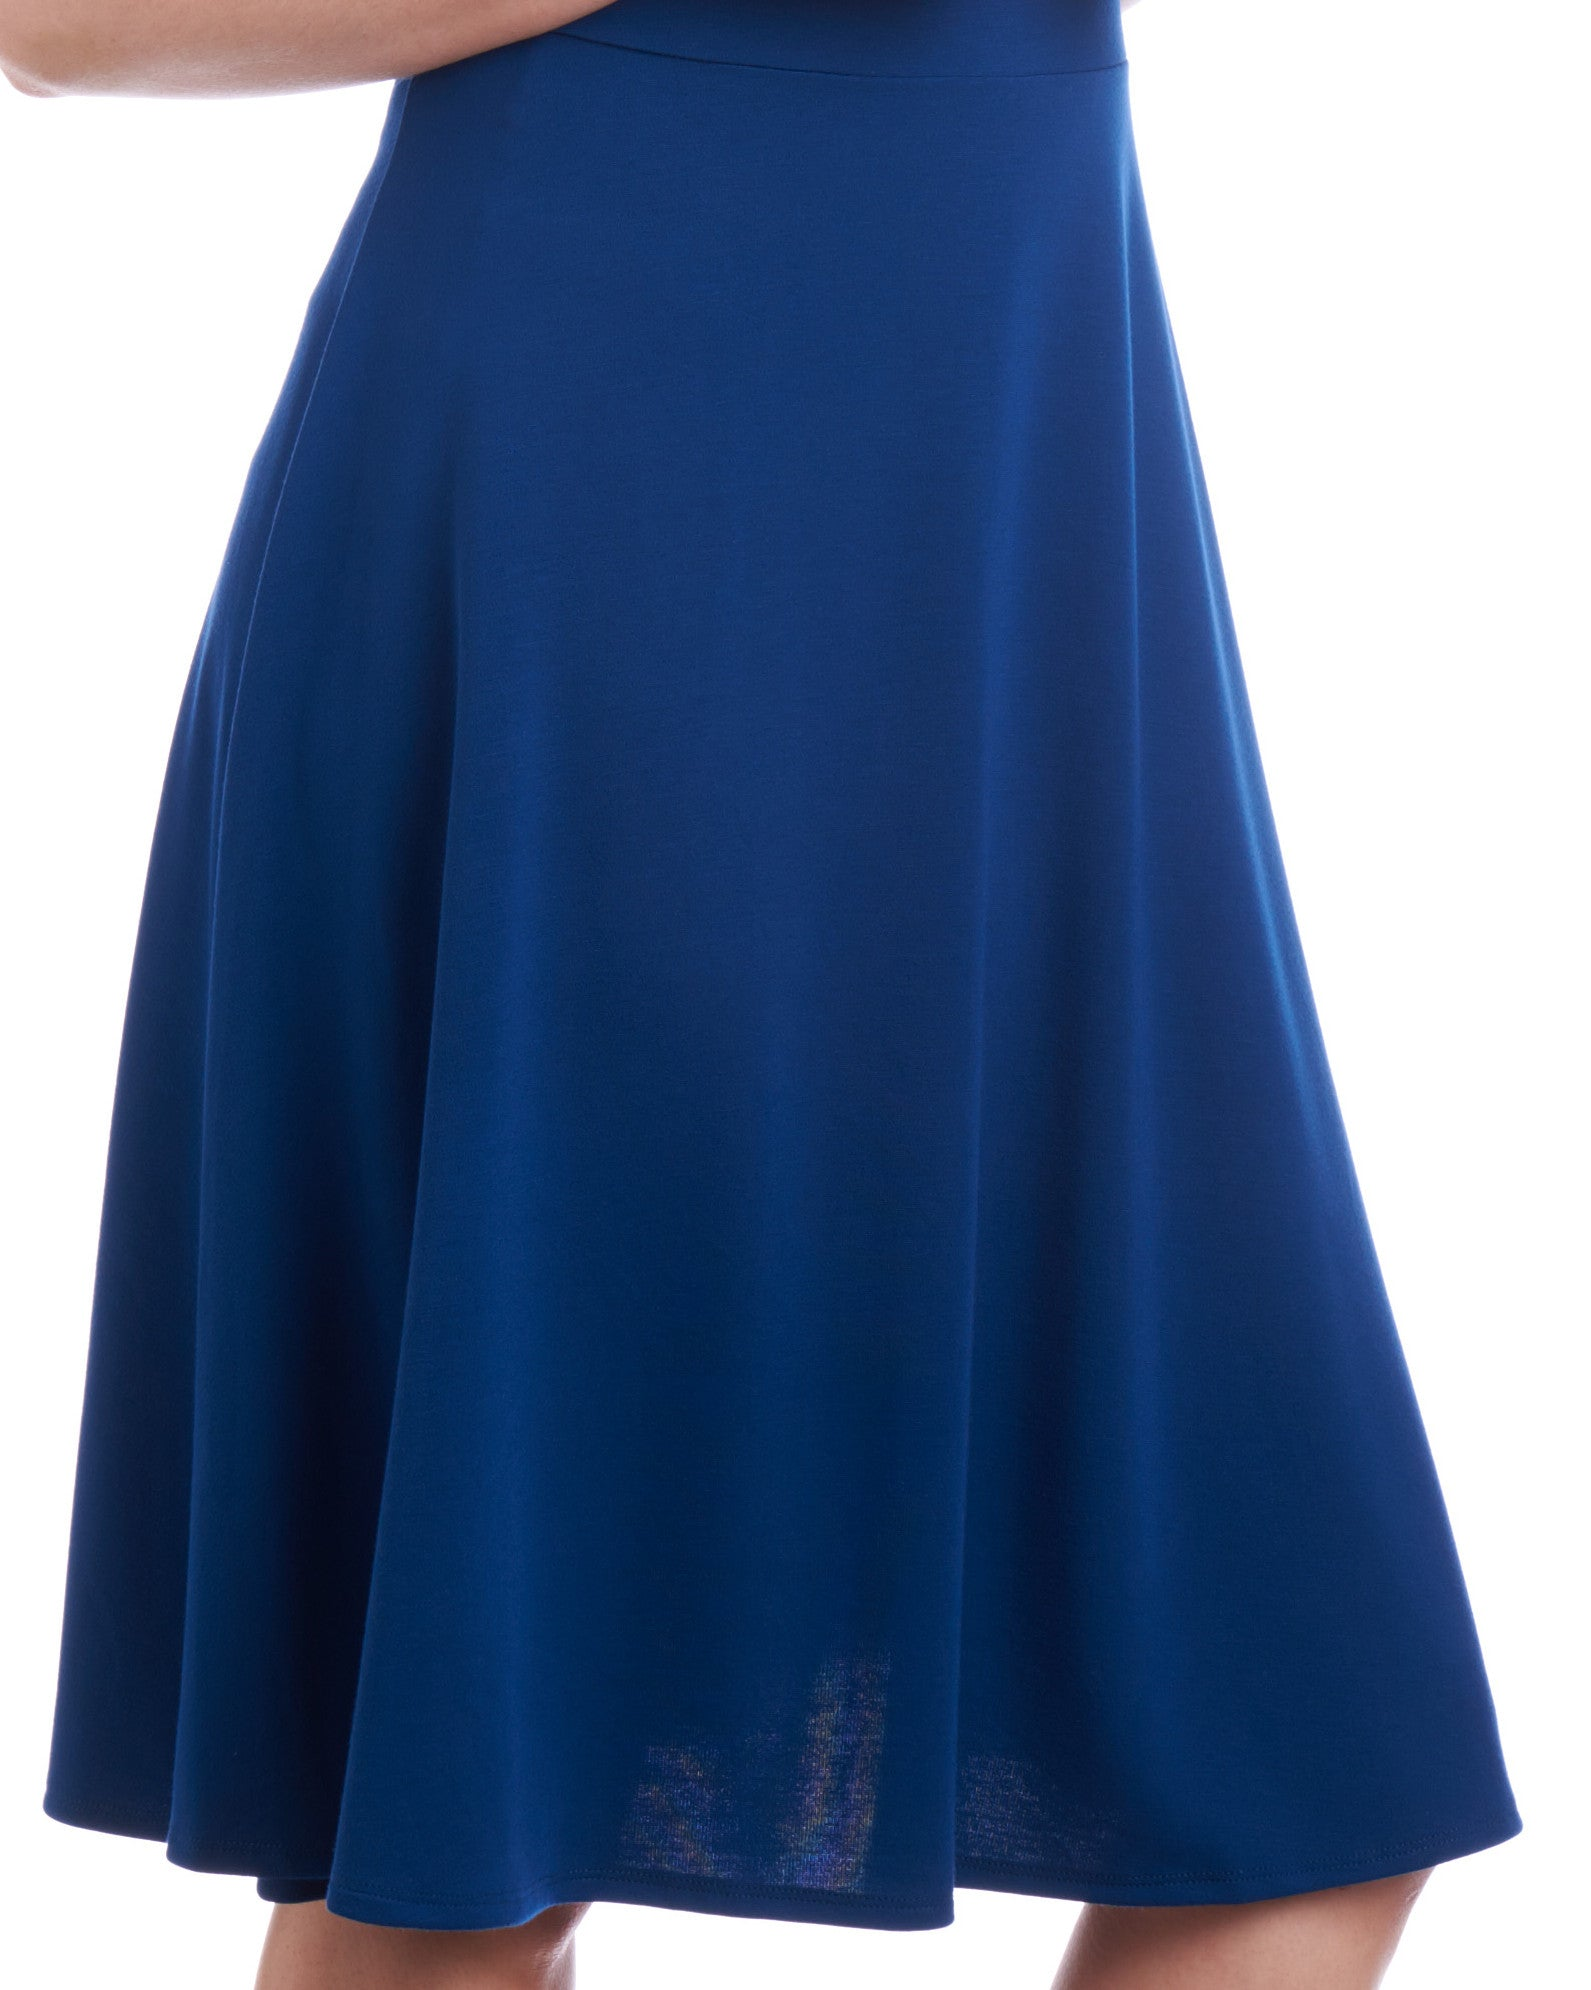 With the Tahlo fit & flare dress you can customise the length of the skirt to suit your height.